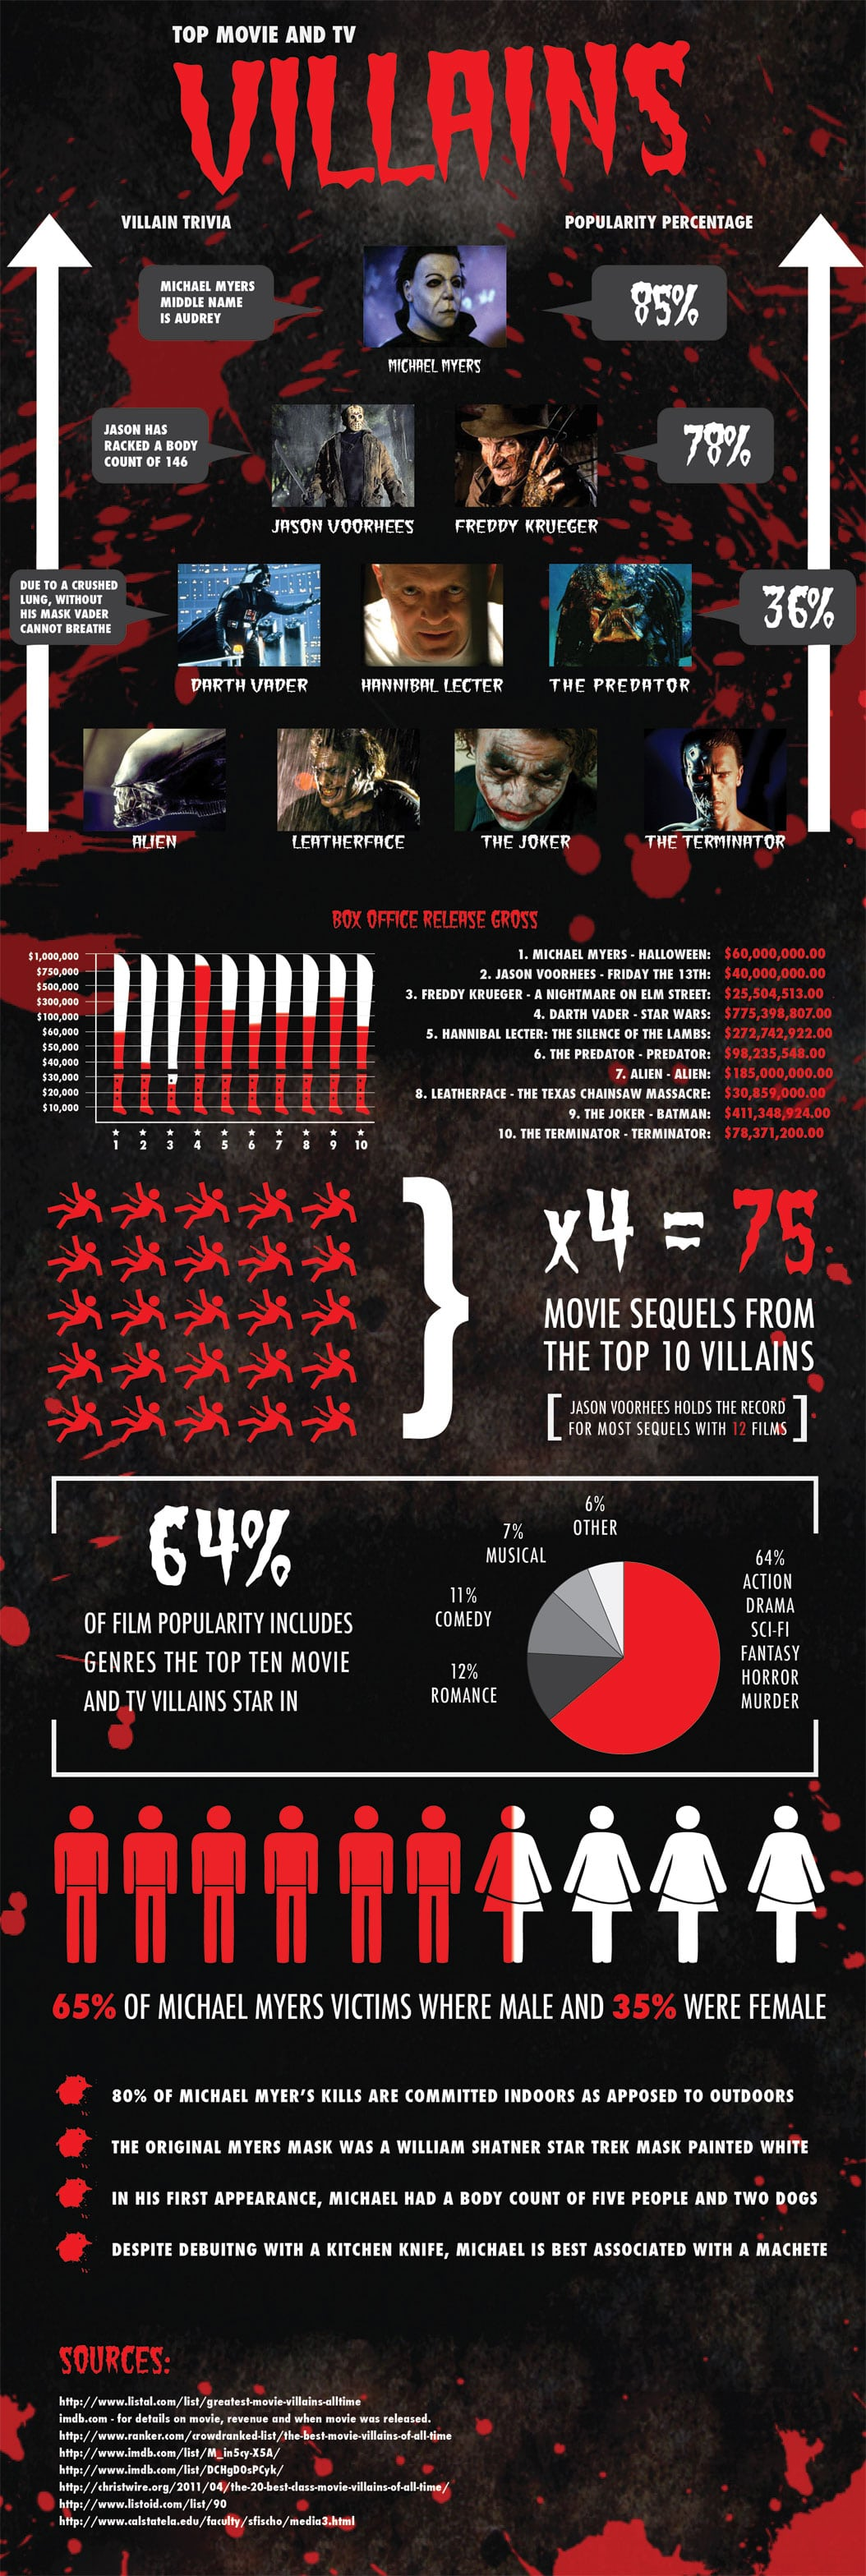 Top Movie & TV Villains: It's All About Horror [Infographic]